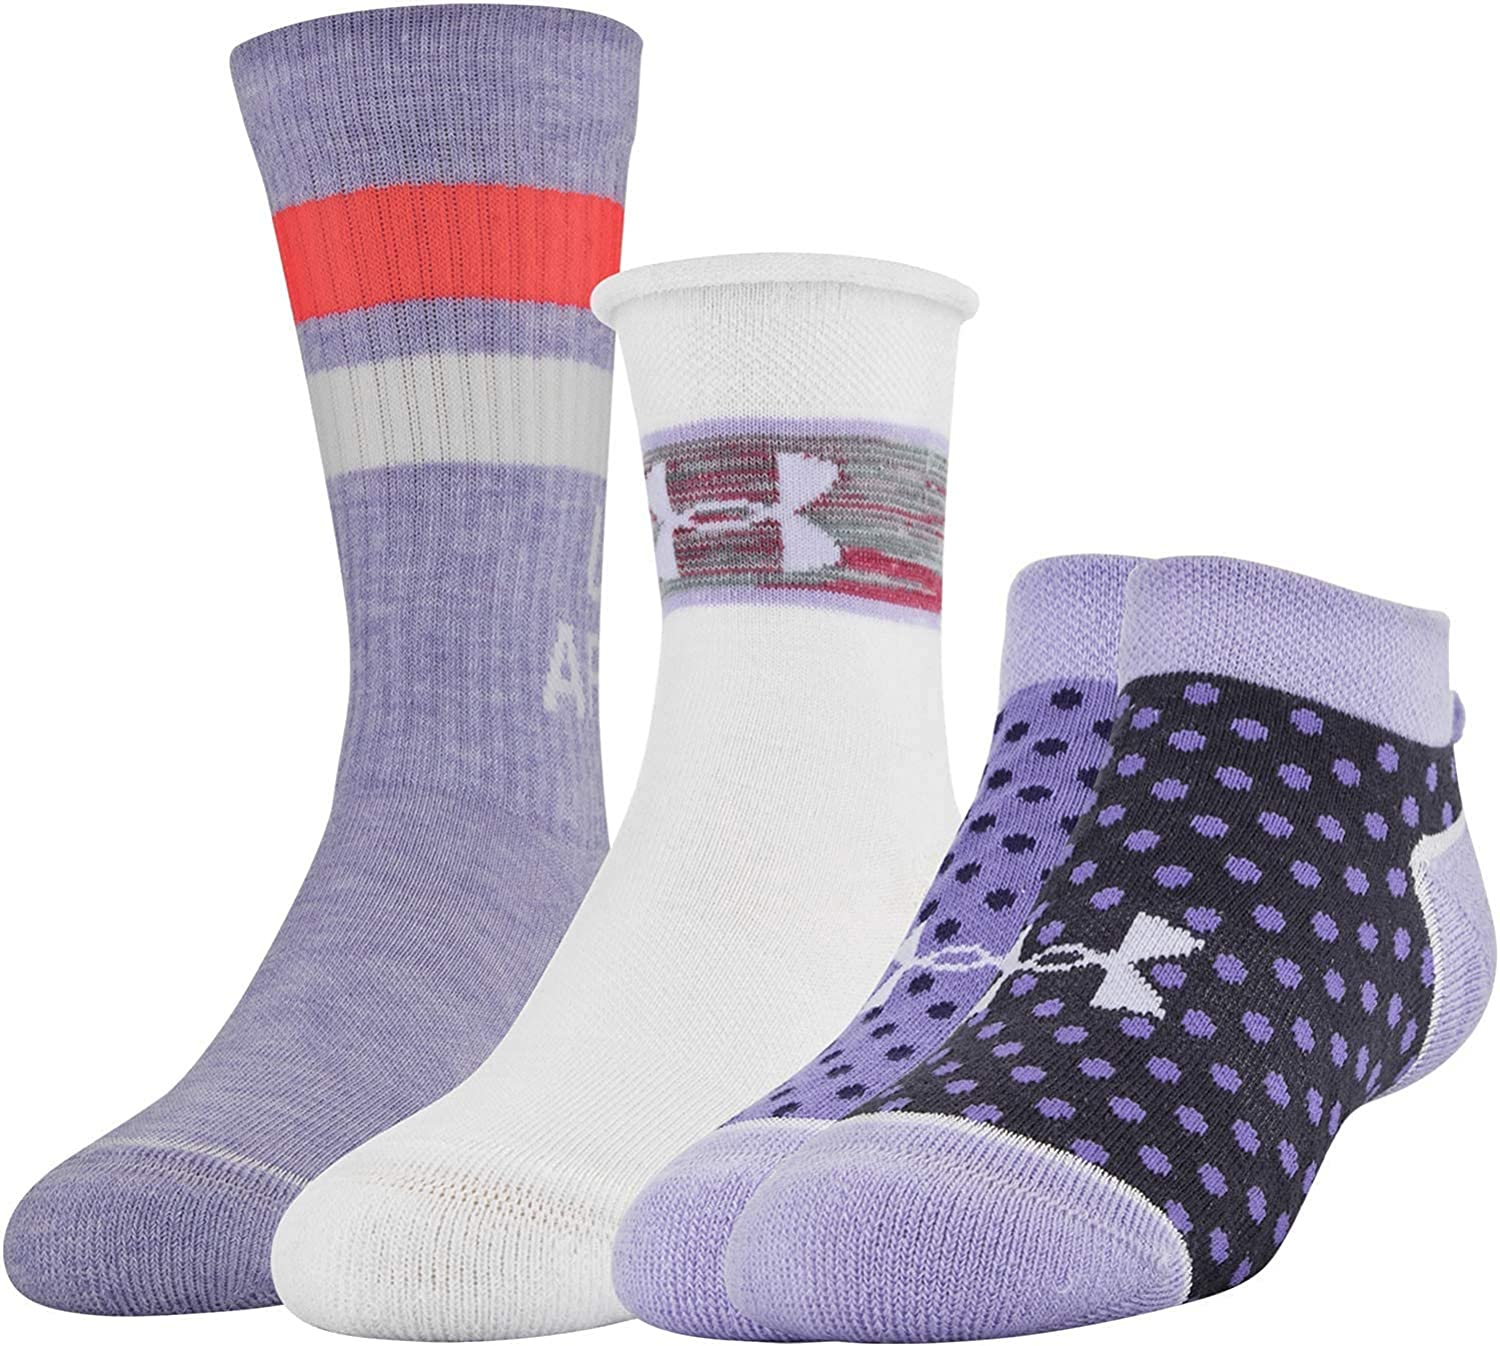 Under Armour Girl's Wardrobe Pack Japan's largest assortment 3 Socks A surprise price is realized